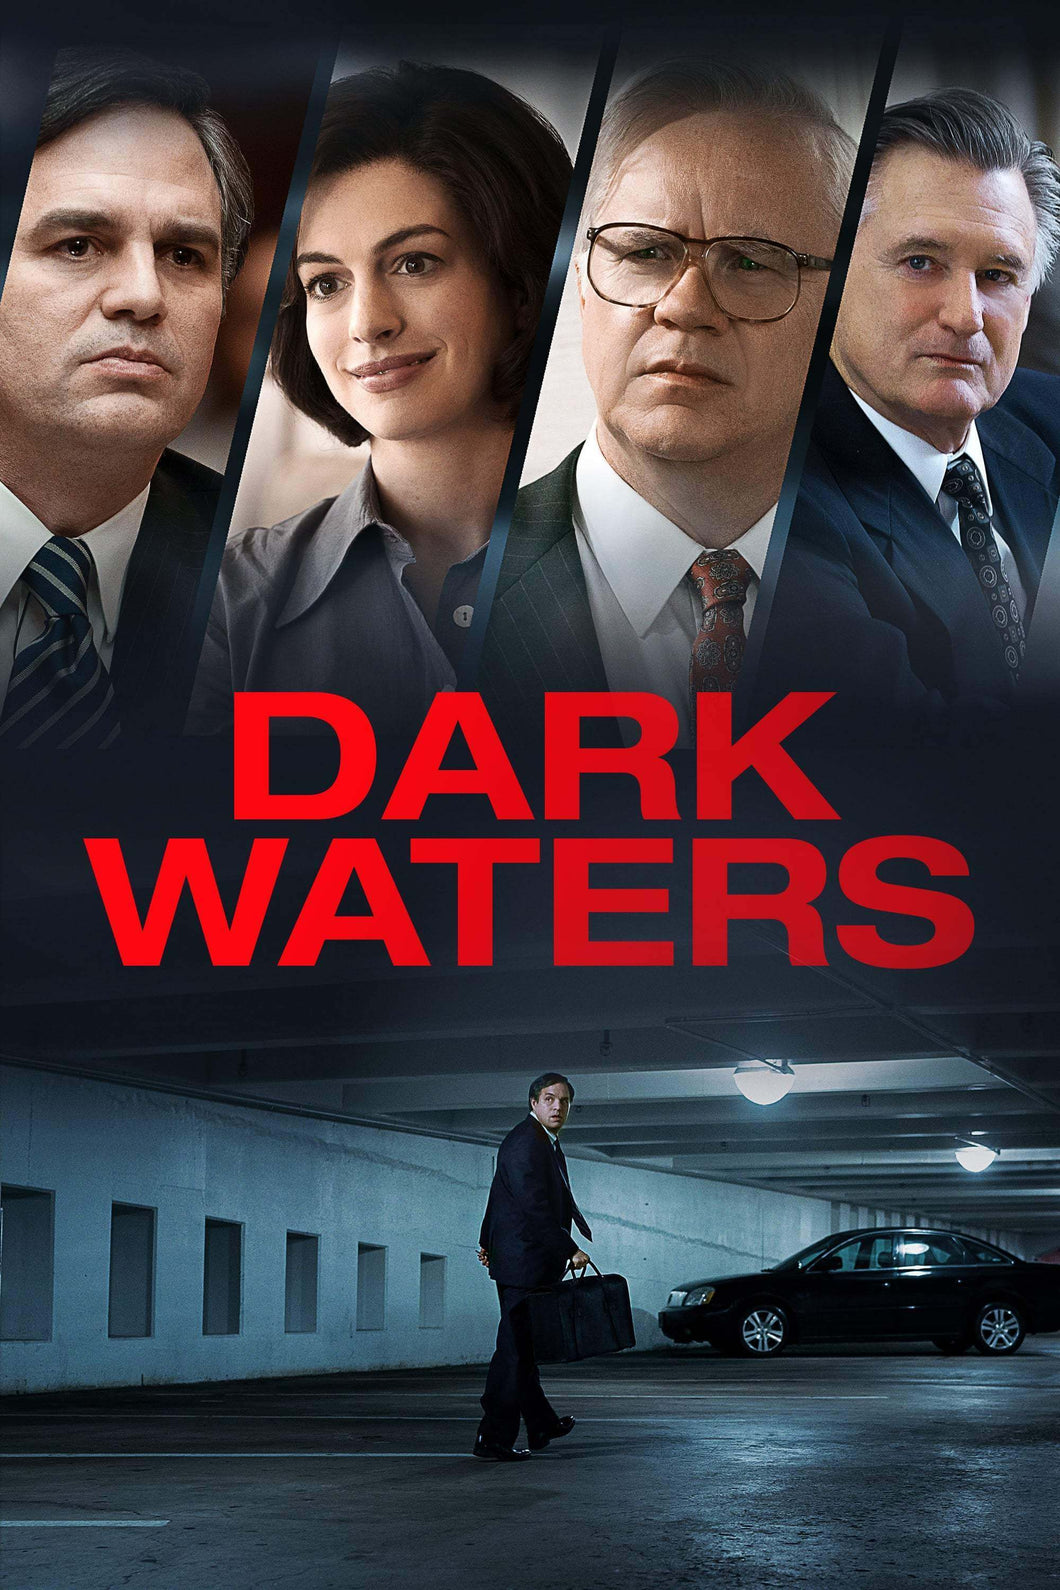 Dark Waters | HD Movies Anywhere Code Ports to Vudu, iTunes, GP - Movie Sometimes